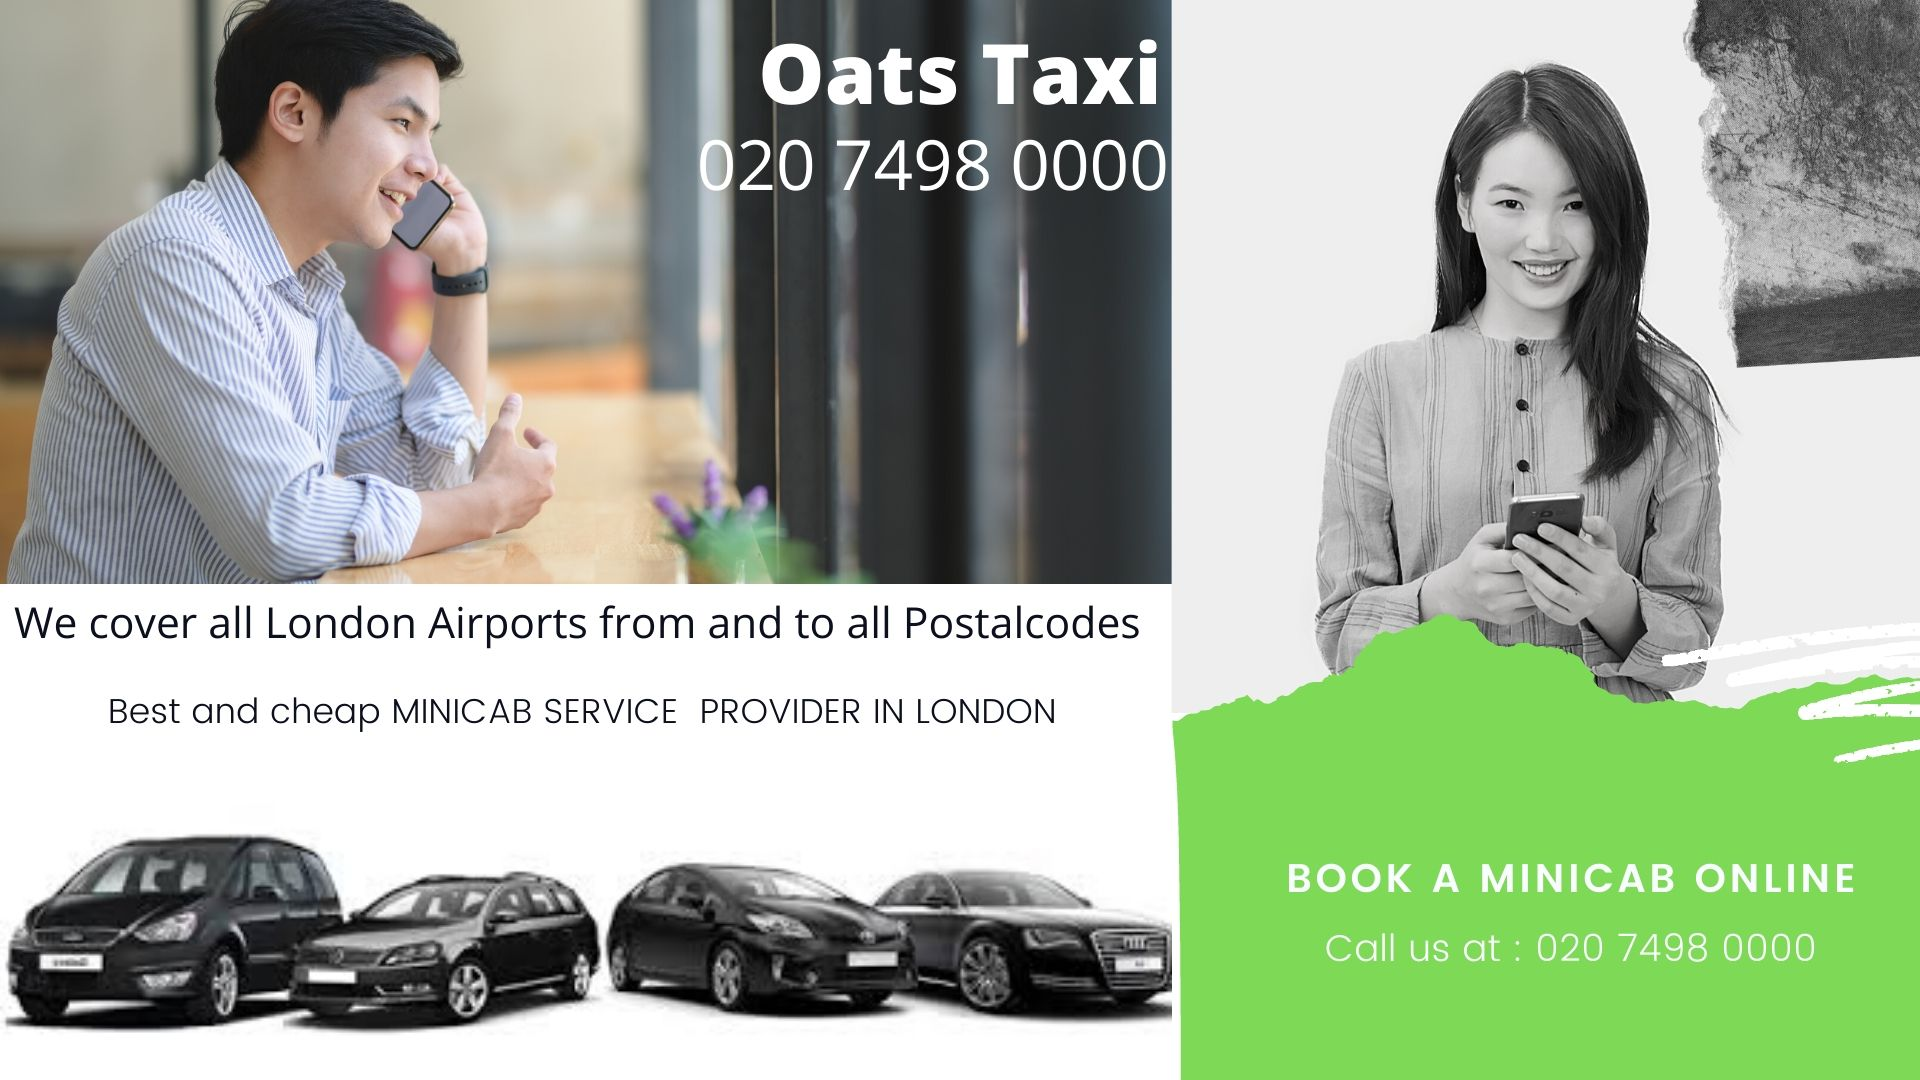 Minicab Office Near WYNTER STREET, Battersea SW11, Minicab From Battersea SW11 To Gatwick Airport